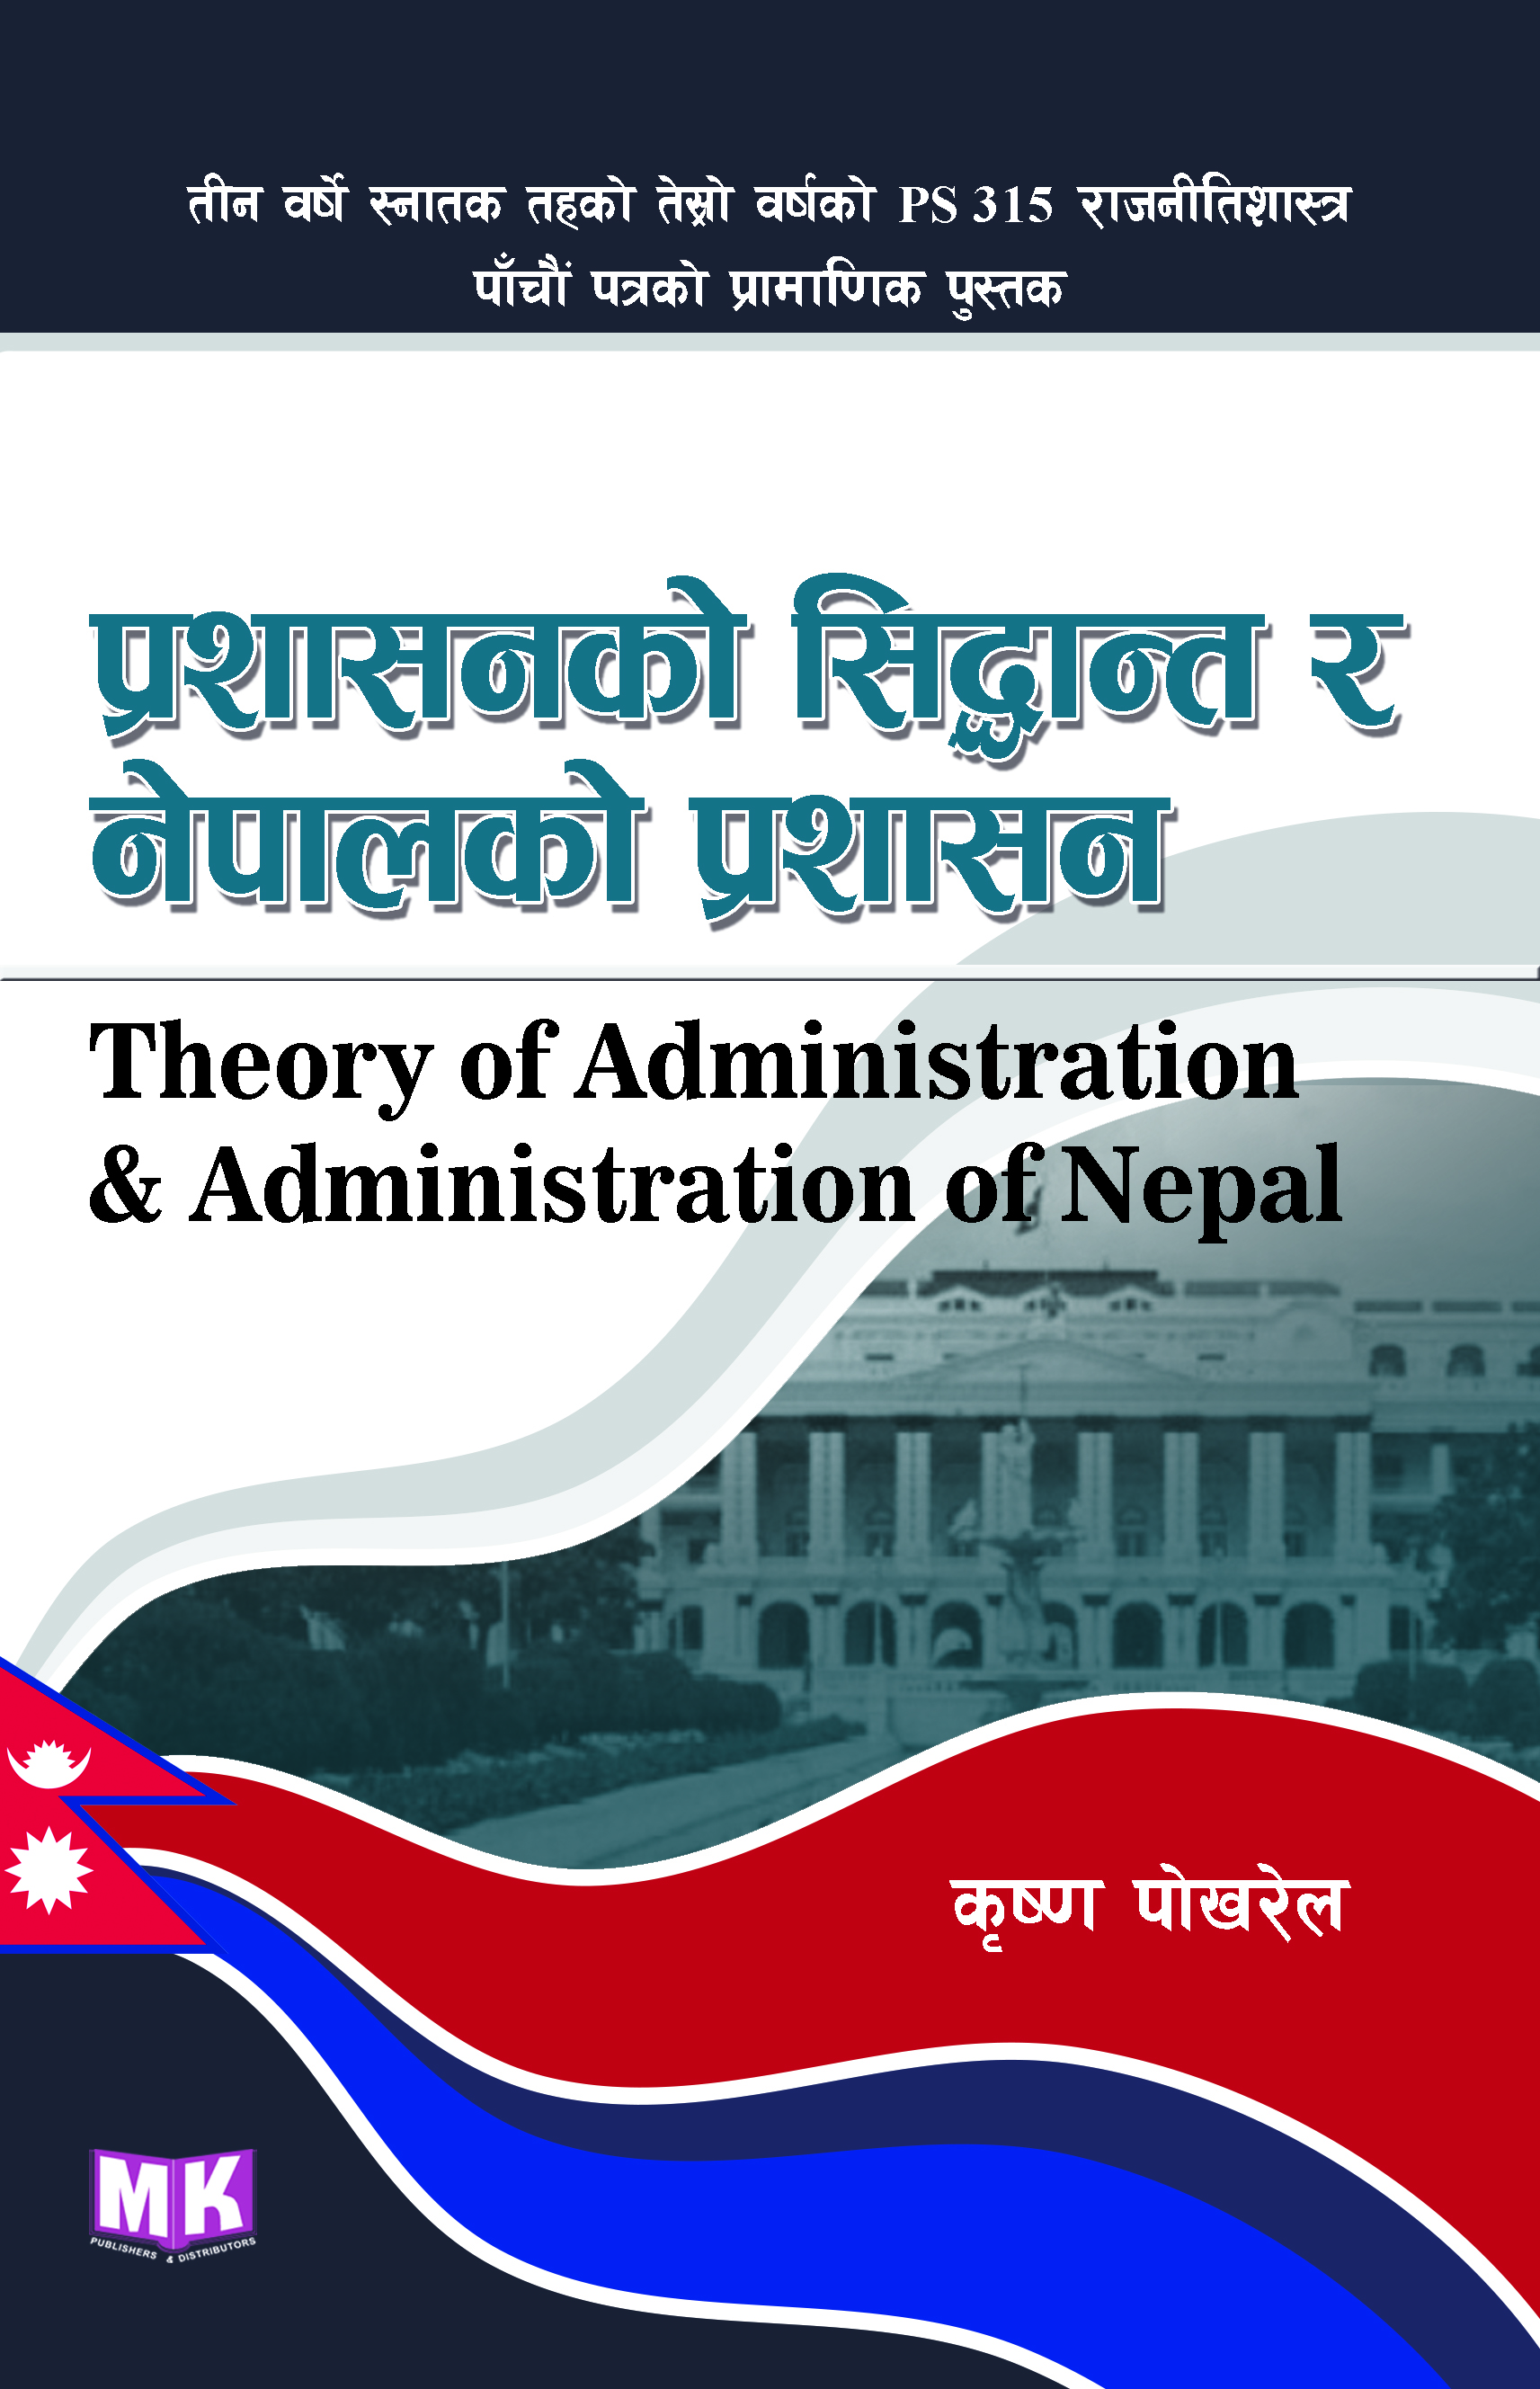 Principles of Management in Nepal – M K  Publishers and Distributors